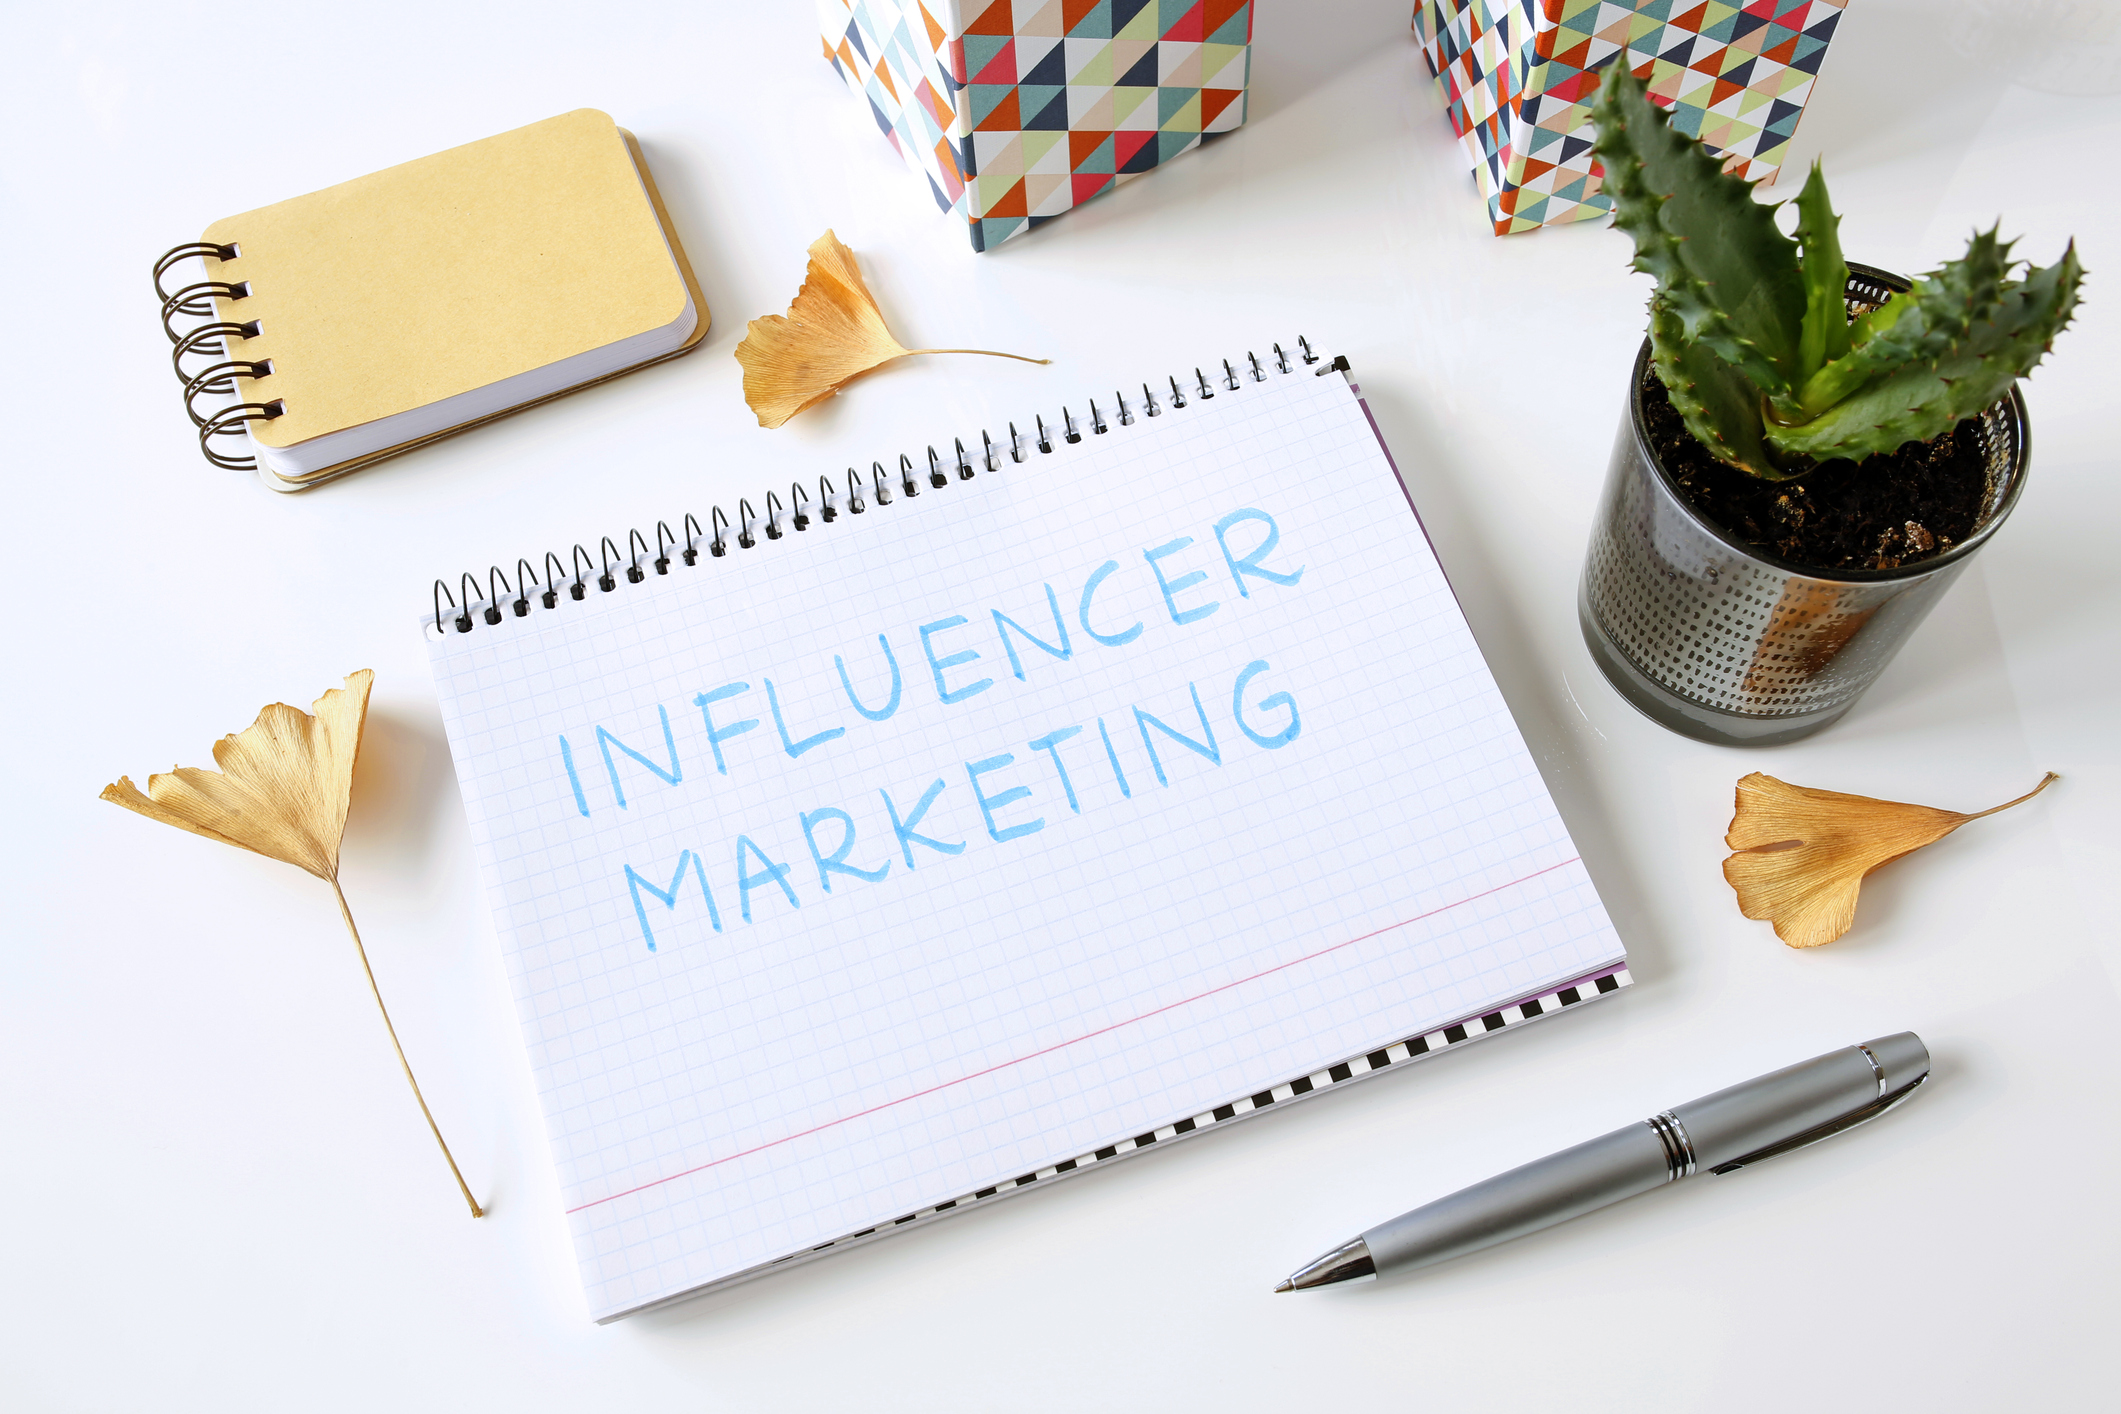 Why Transparency is the Biggest Trend in Influencer Marketing